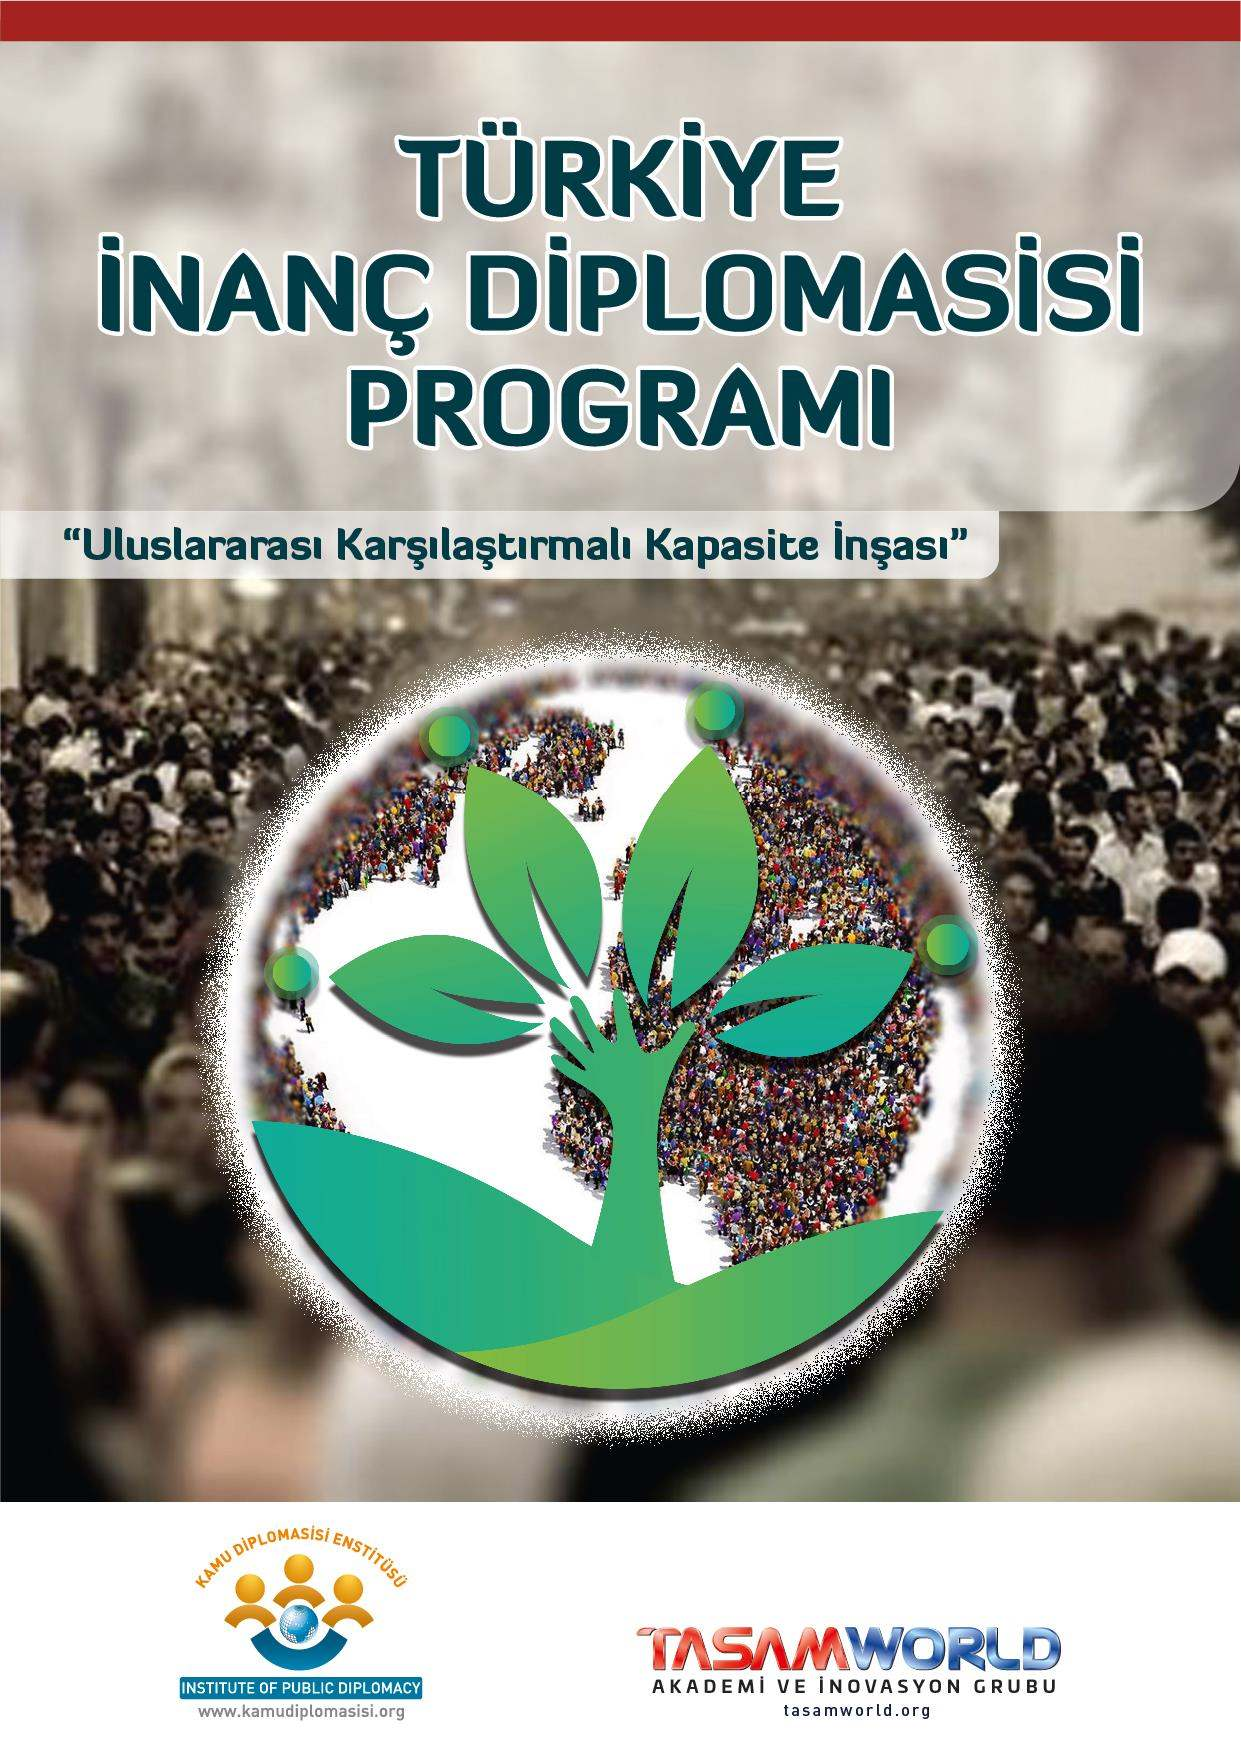 Turkey Faith Diplomacy Program